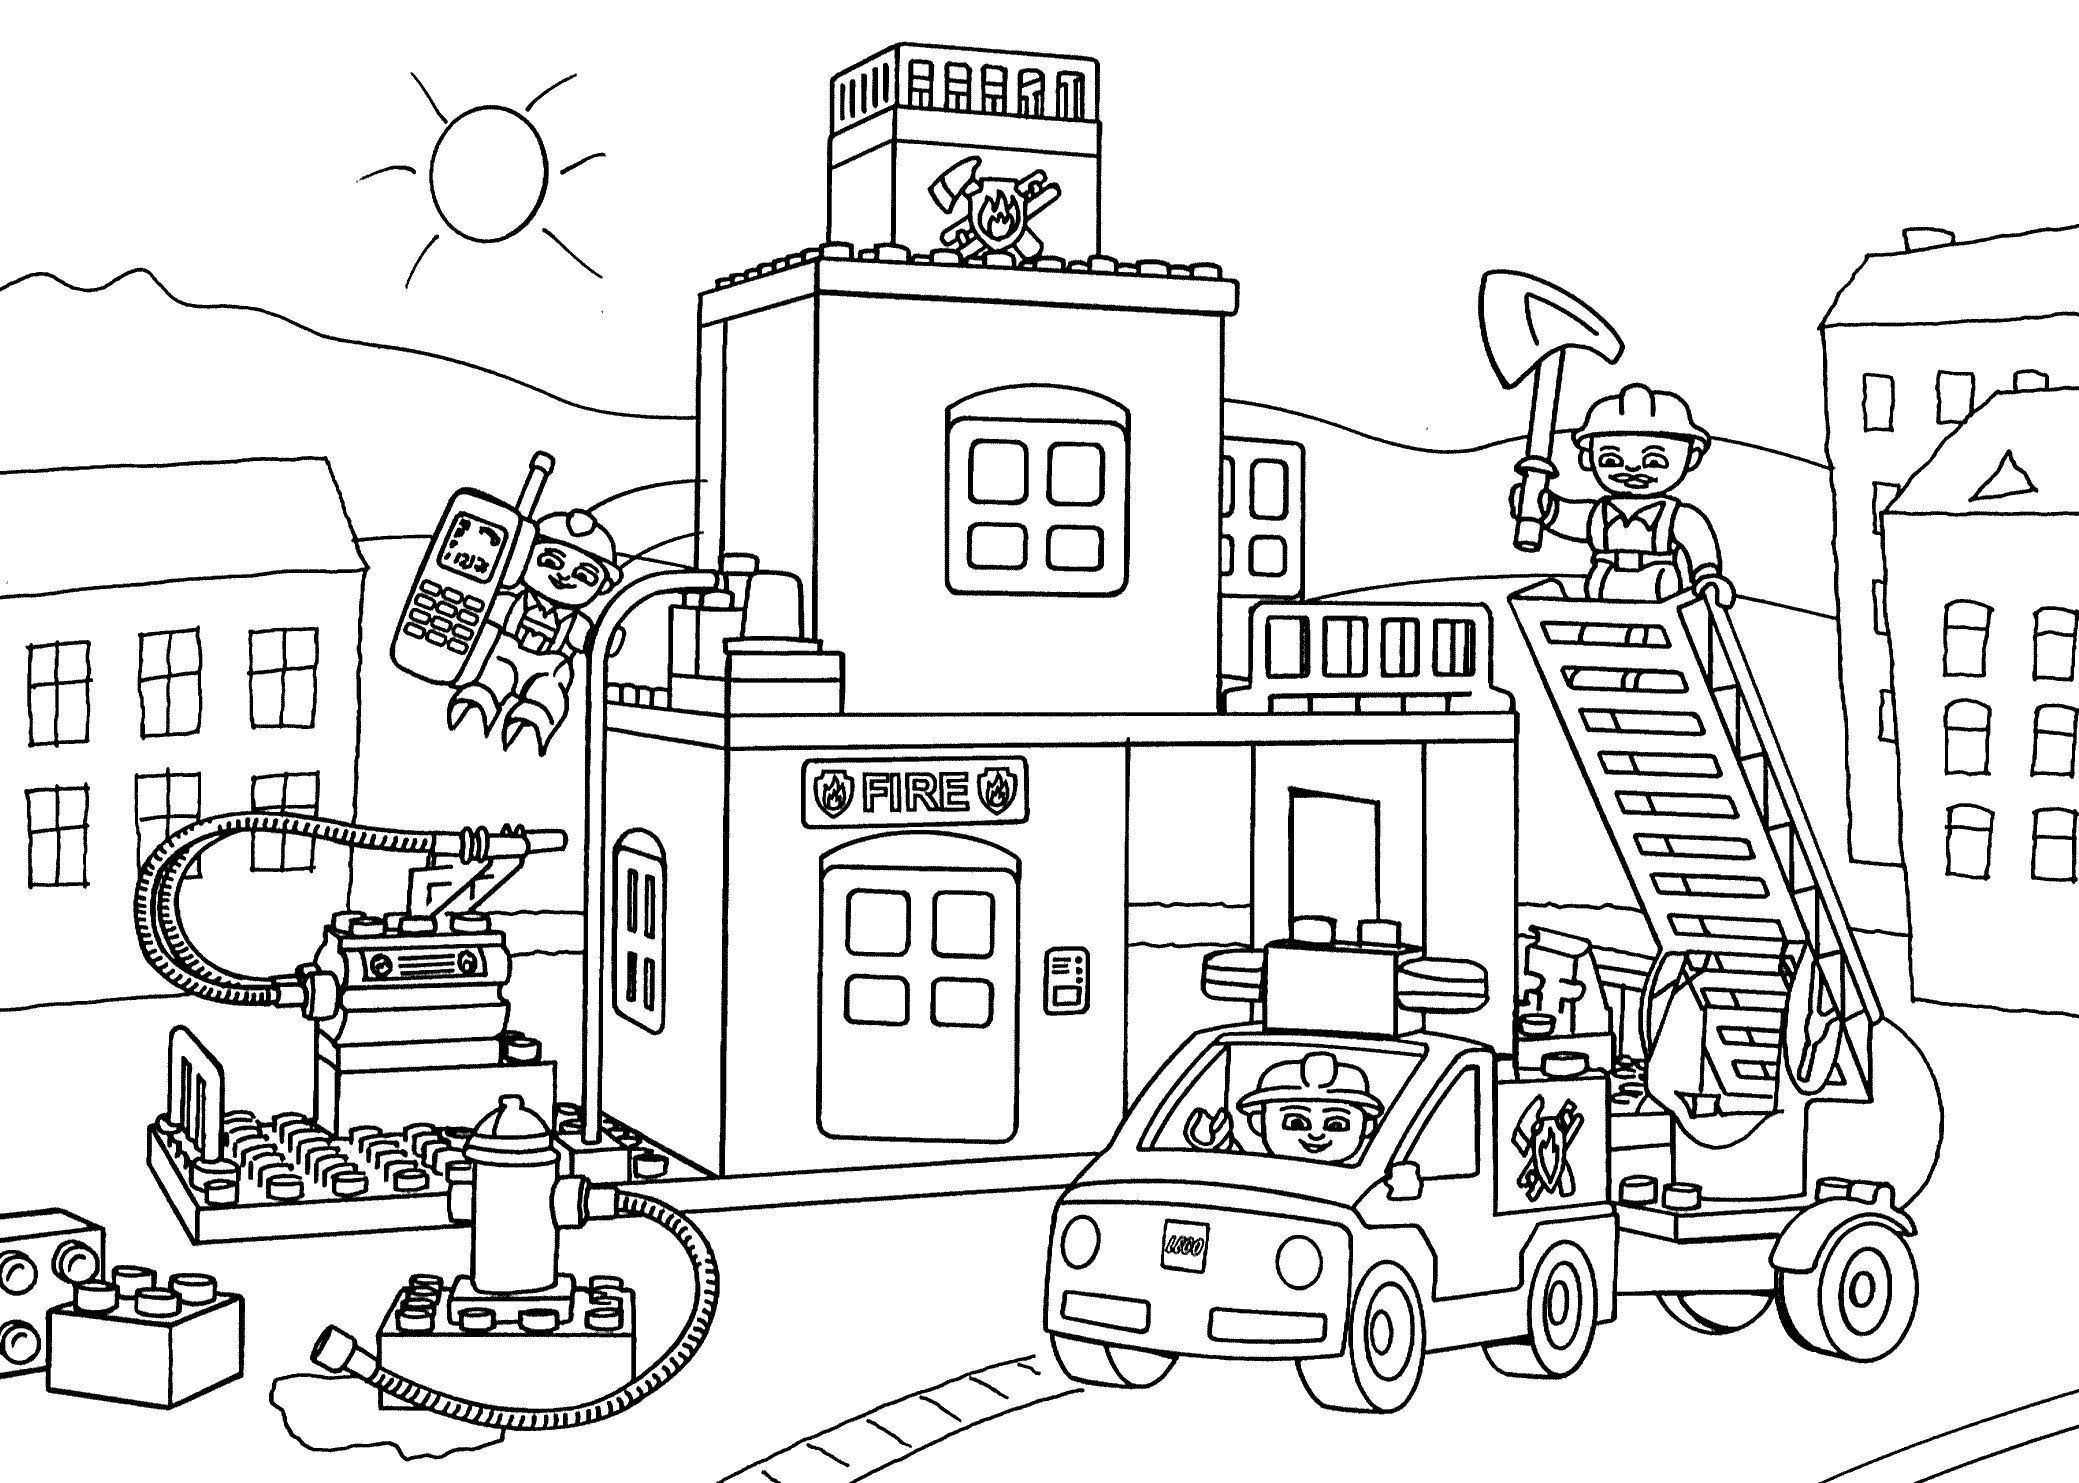 lego city train coloring pages lego city train coloring pages pages lego coloring train city